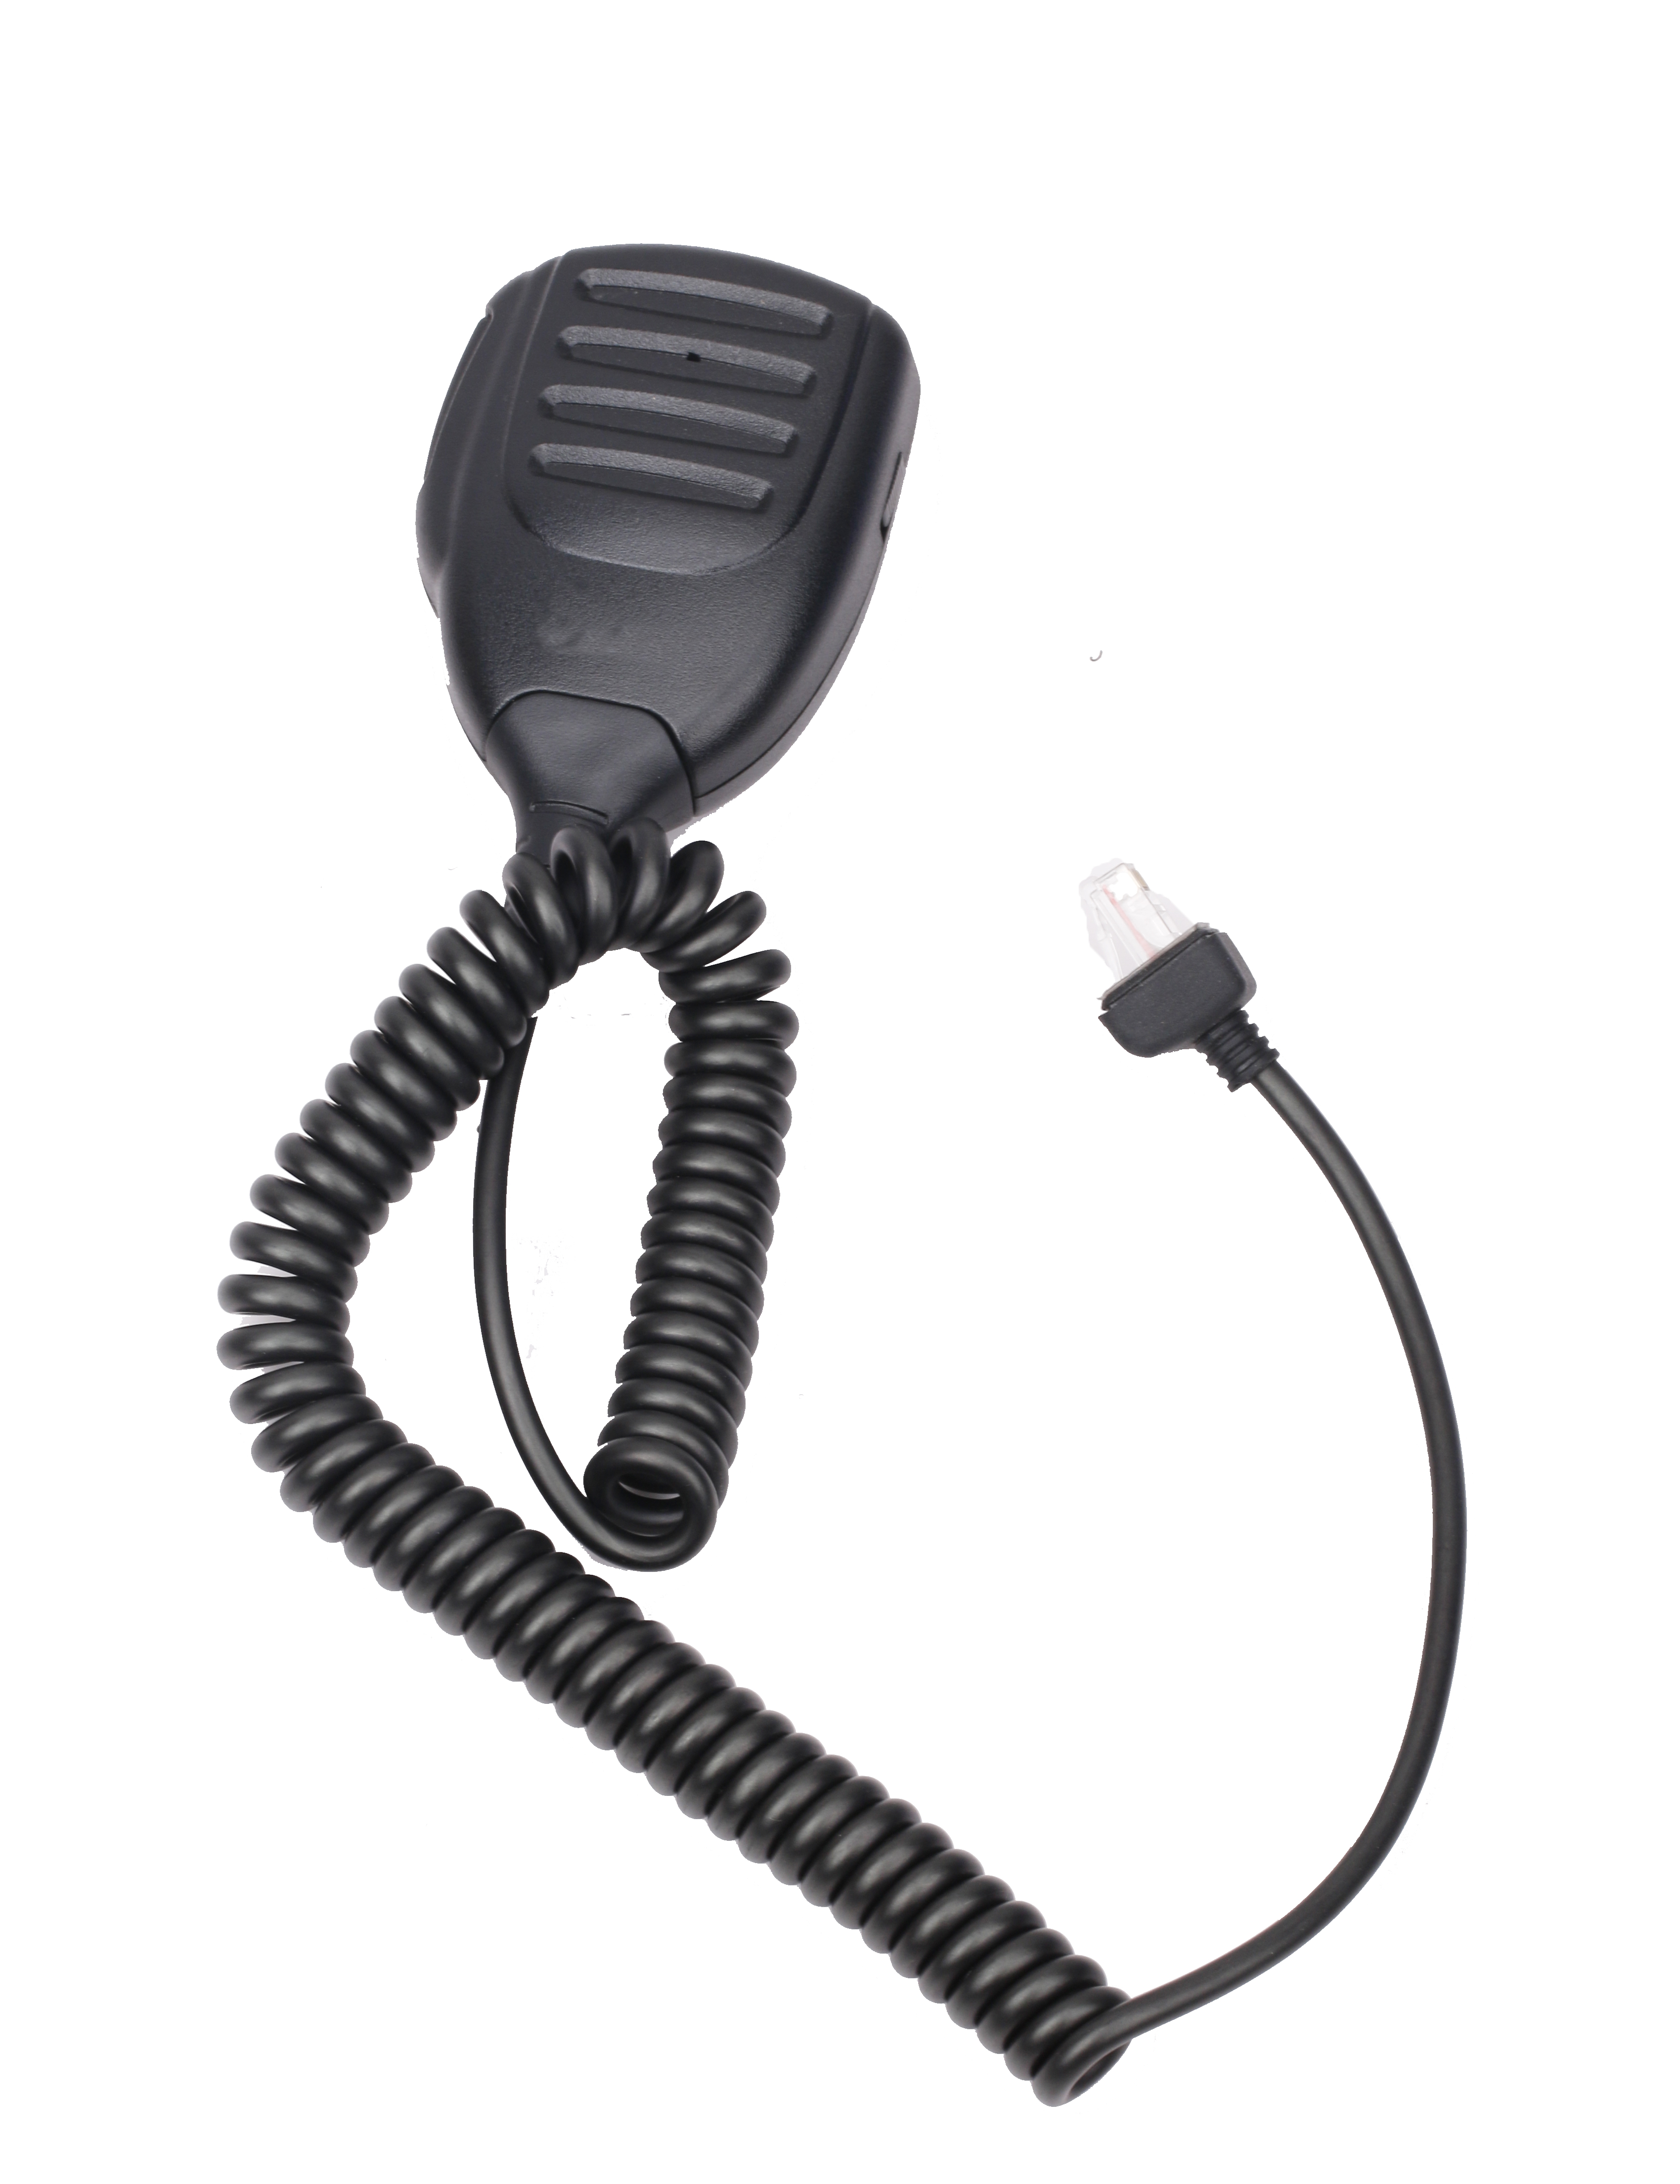 Standard Speaker Microphone CTG-HM152 for Icom Radio